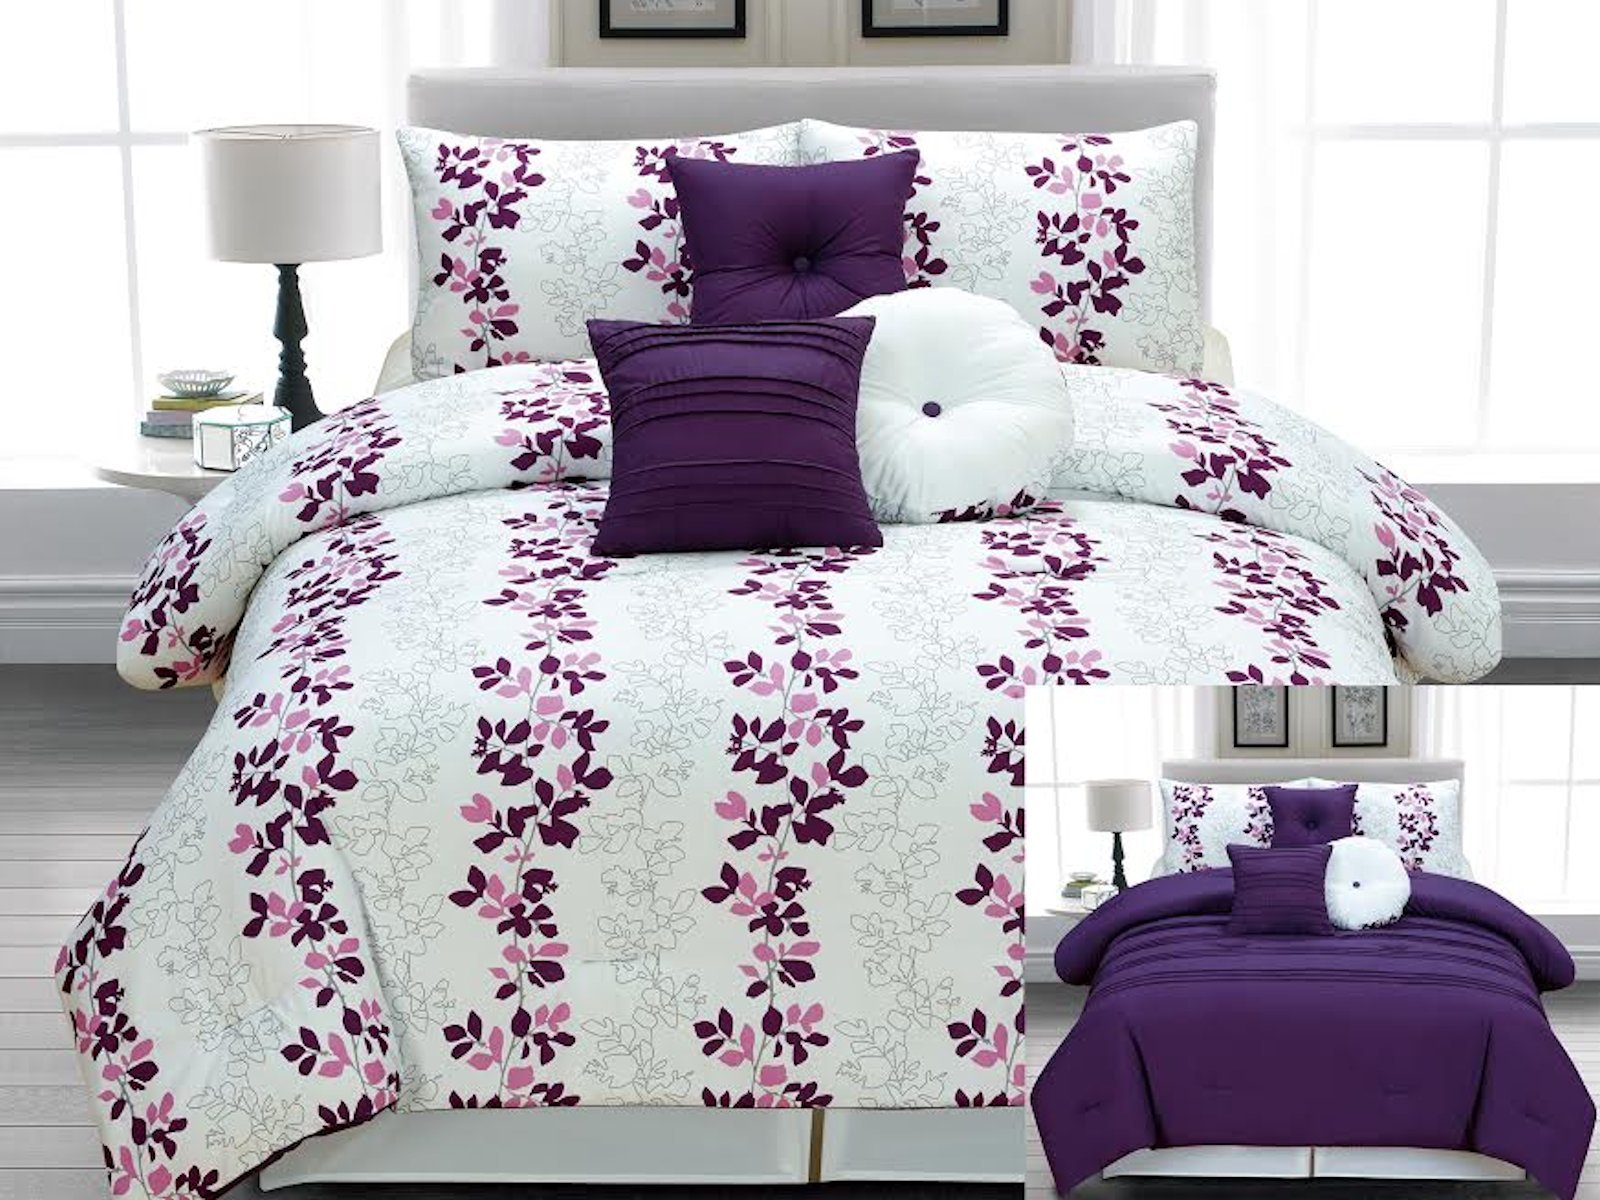 Bedroom Queen Bedspreads Queen Quilts